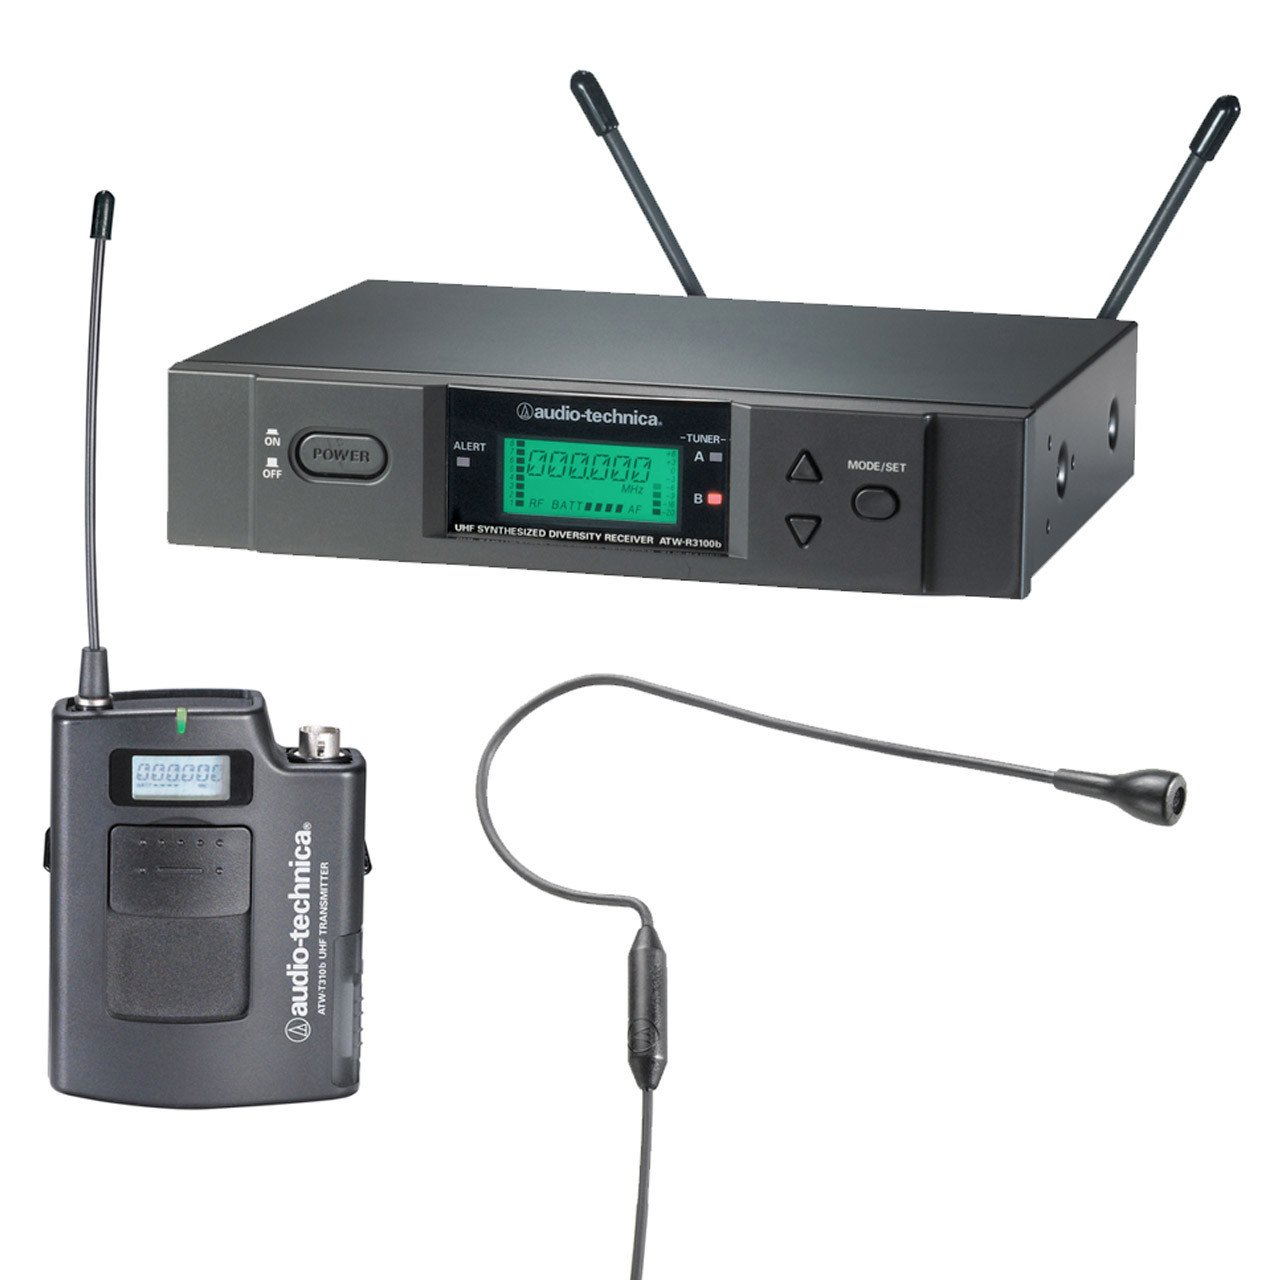 Wireless Systems - Audio-Technica ATW-3000Head92 - 3000 Series Receiver And Condenser Headworm Mic.